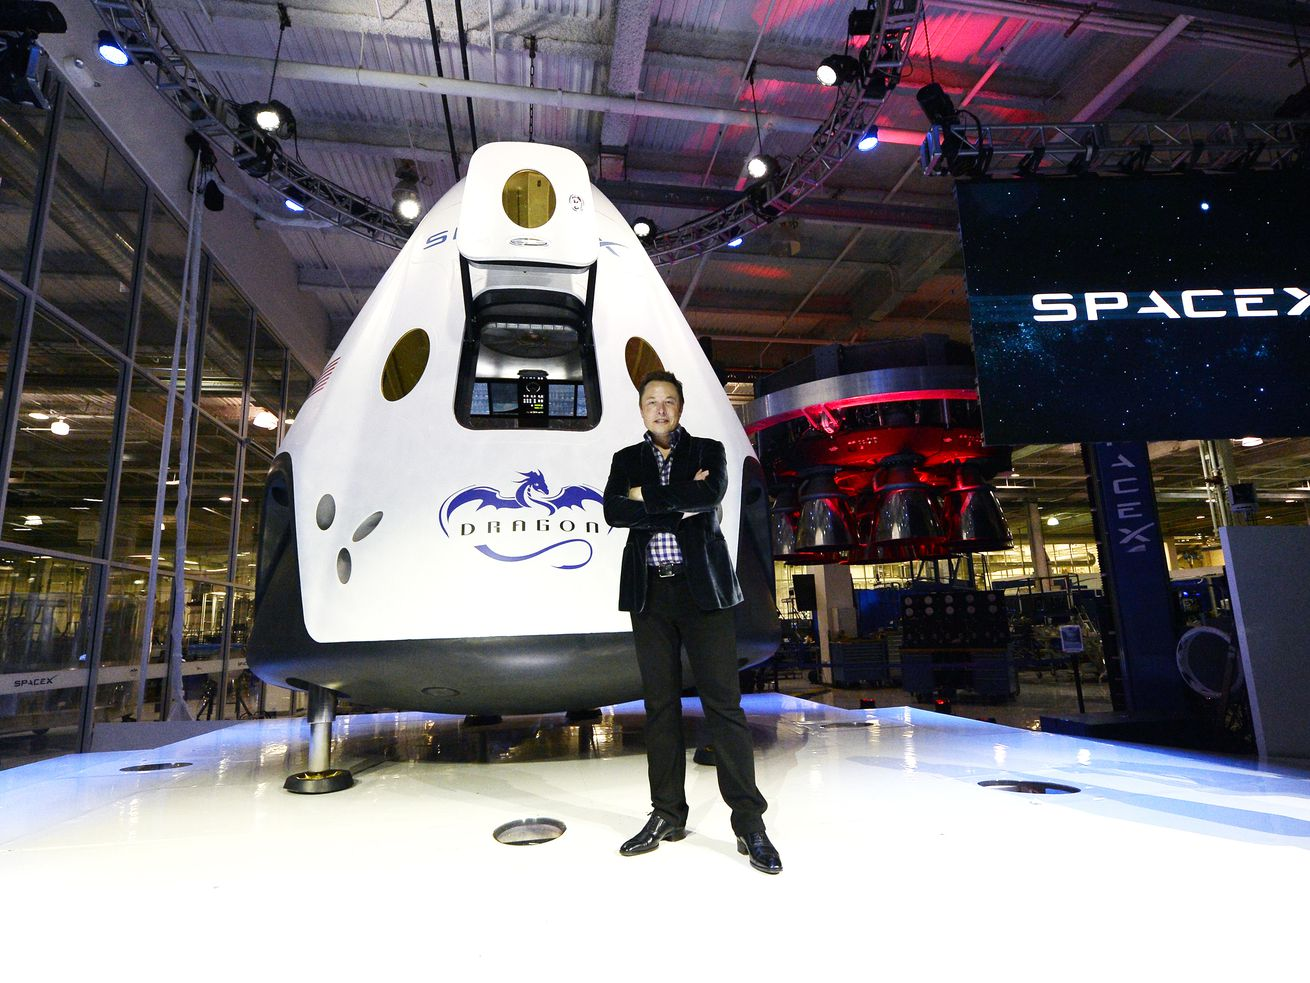 SpaceX wants to solve Earth's problems by rocketing people to Mars.